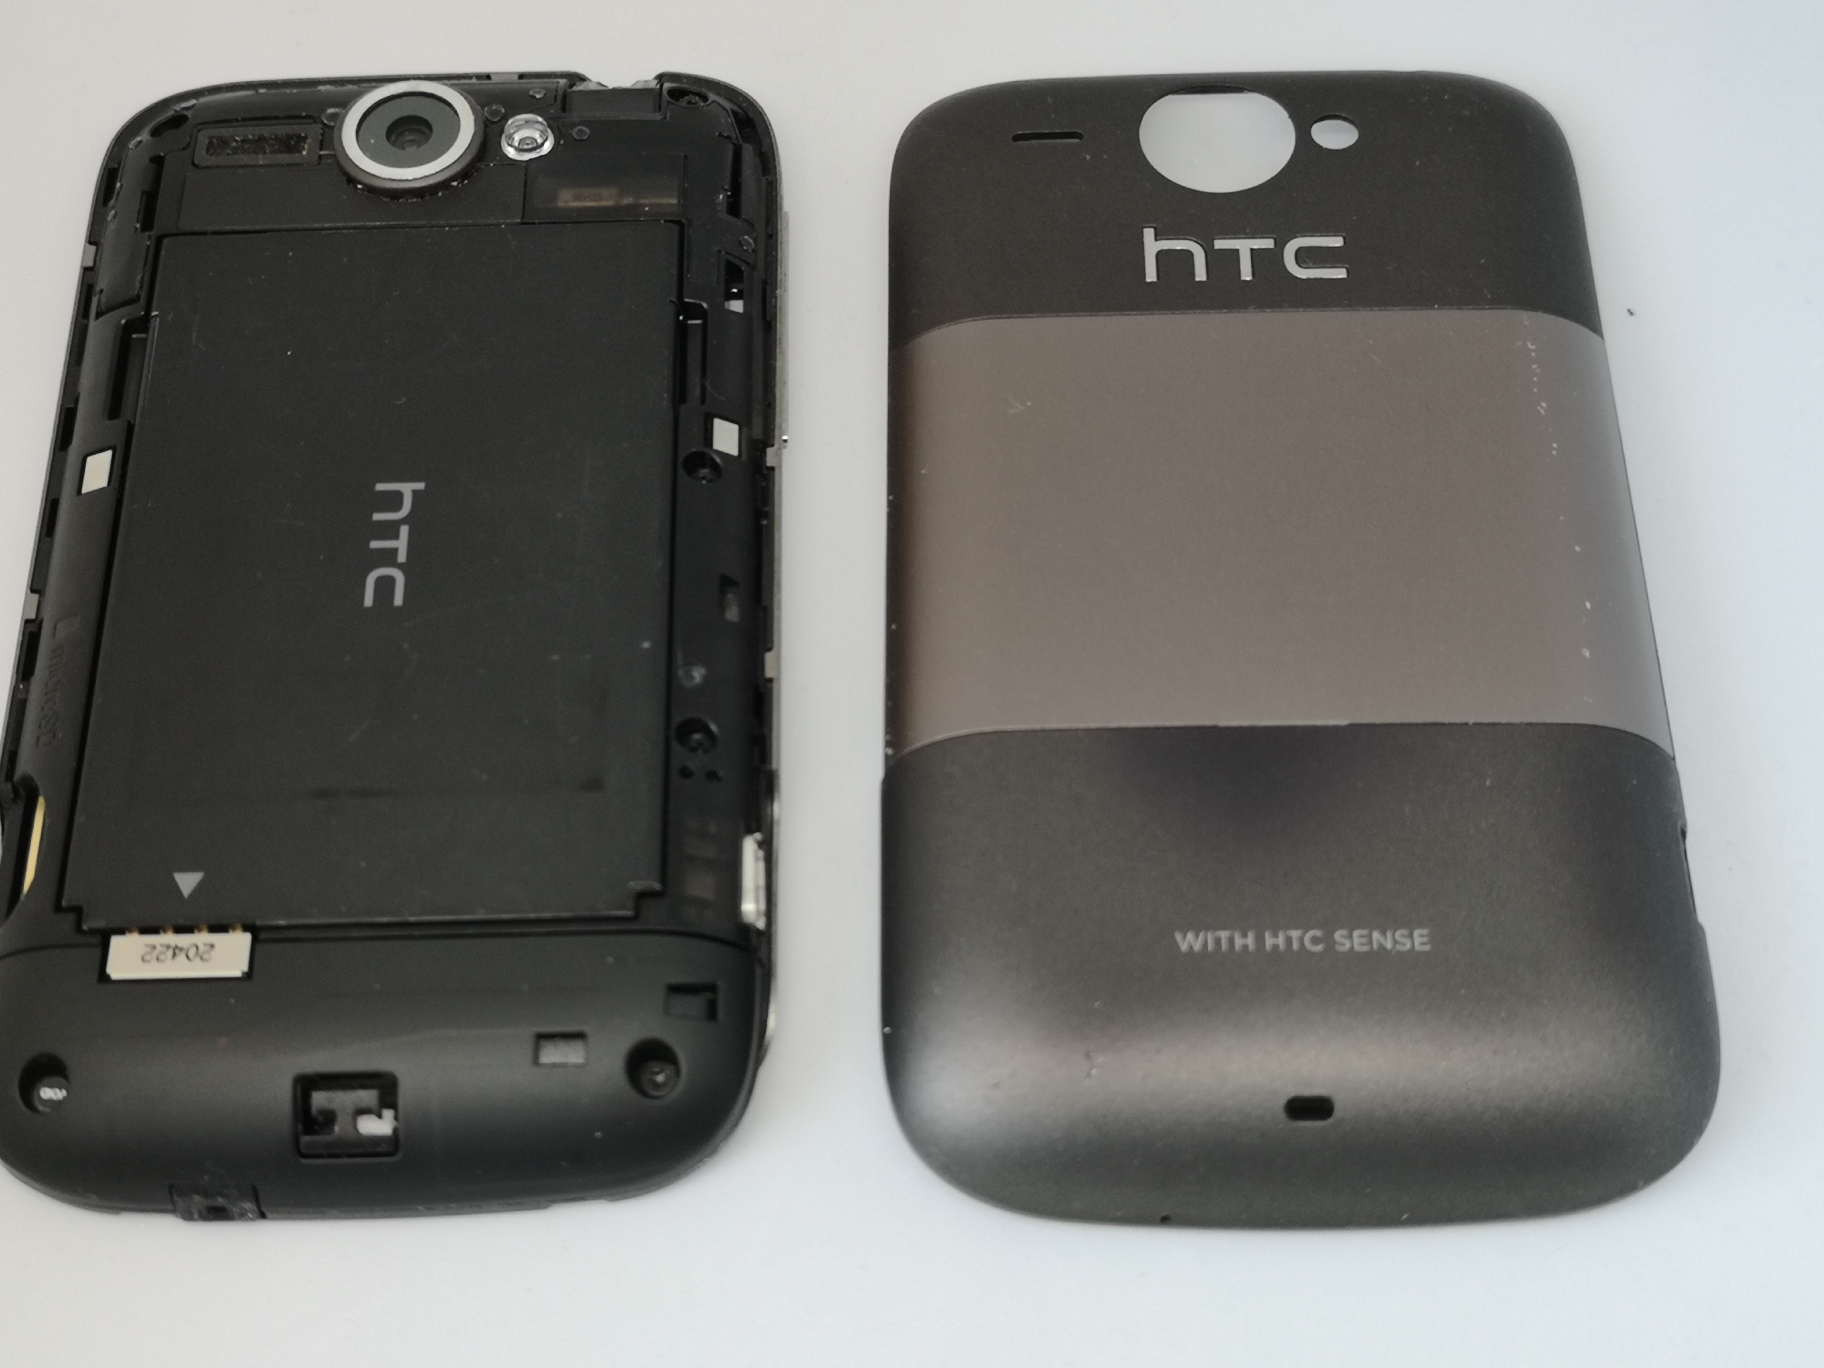 HTC Wildfire Review - Premium Small Screen Android Phone